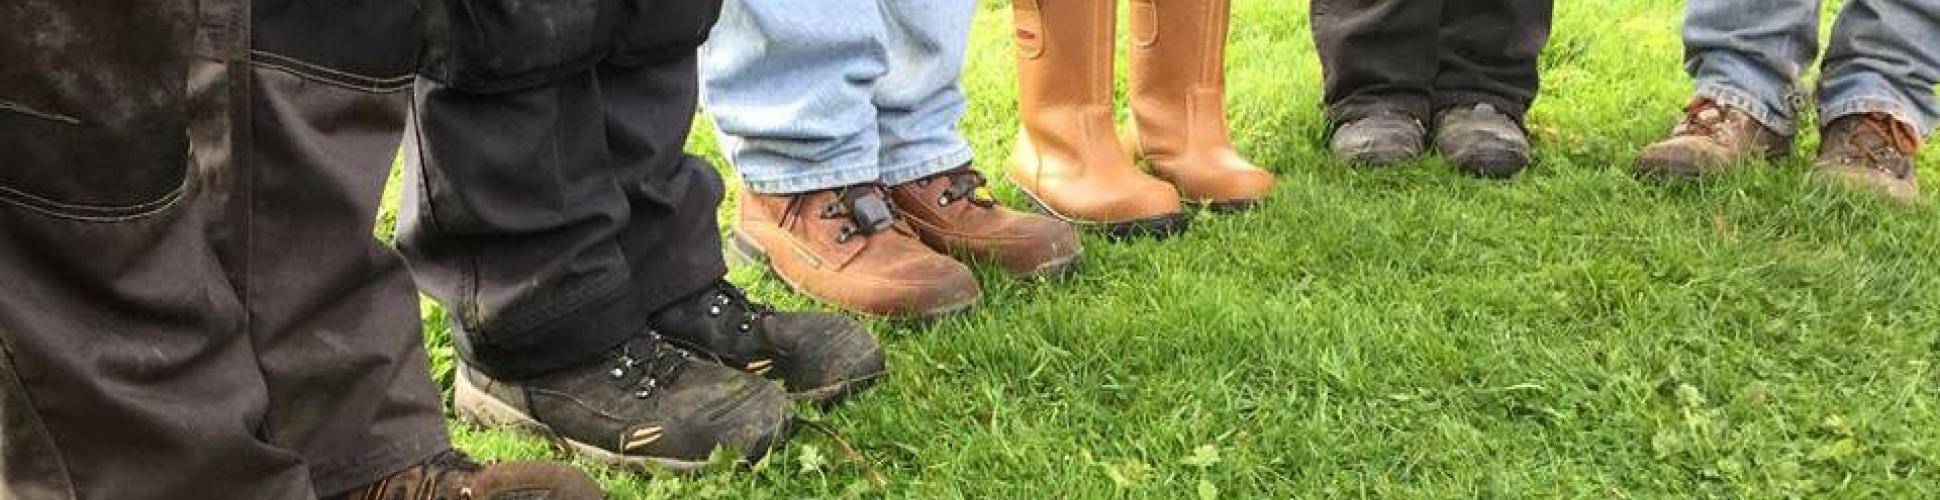 Muddy boots of conservation volunteers